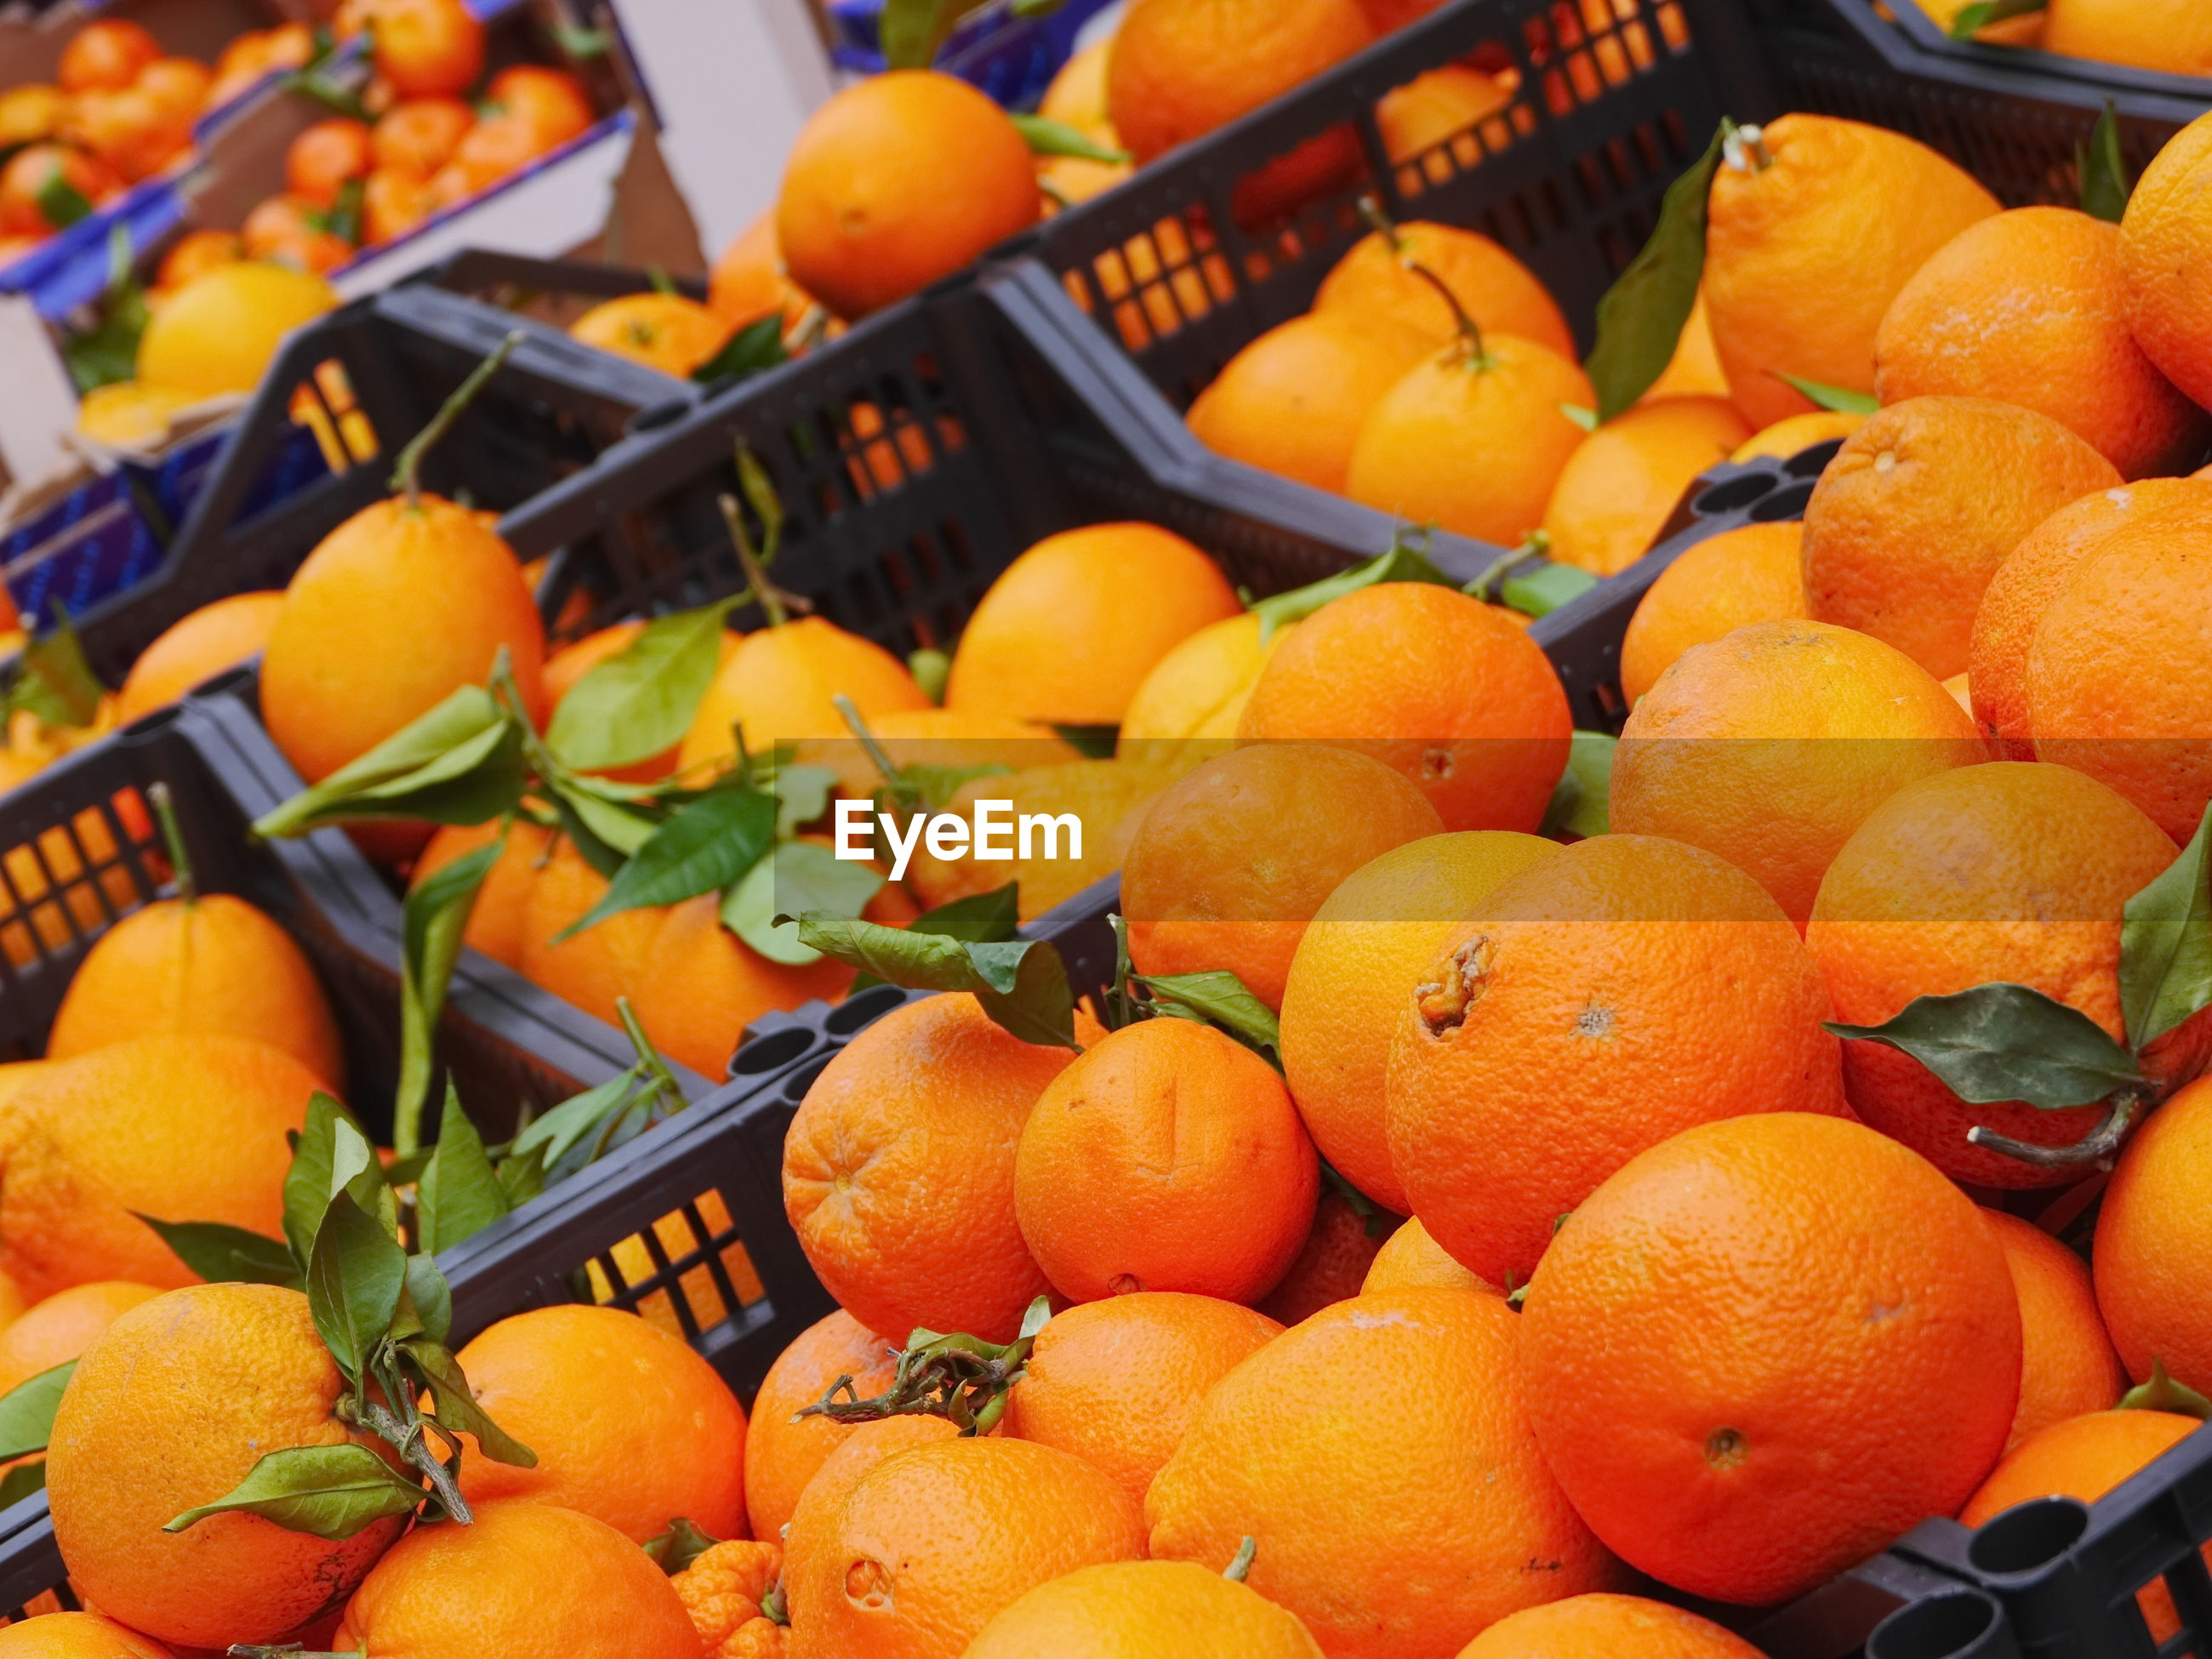 Close-up of oranges in crates for sale in market